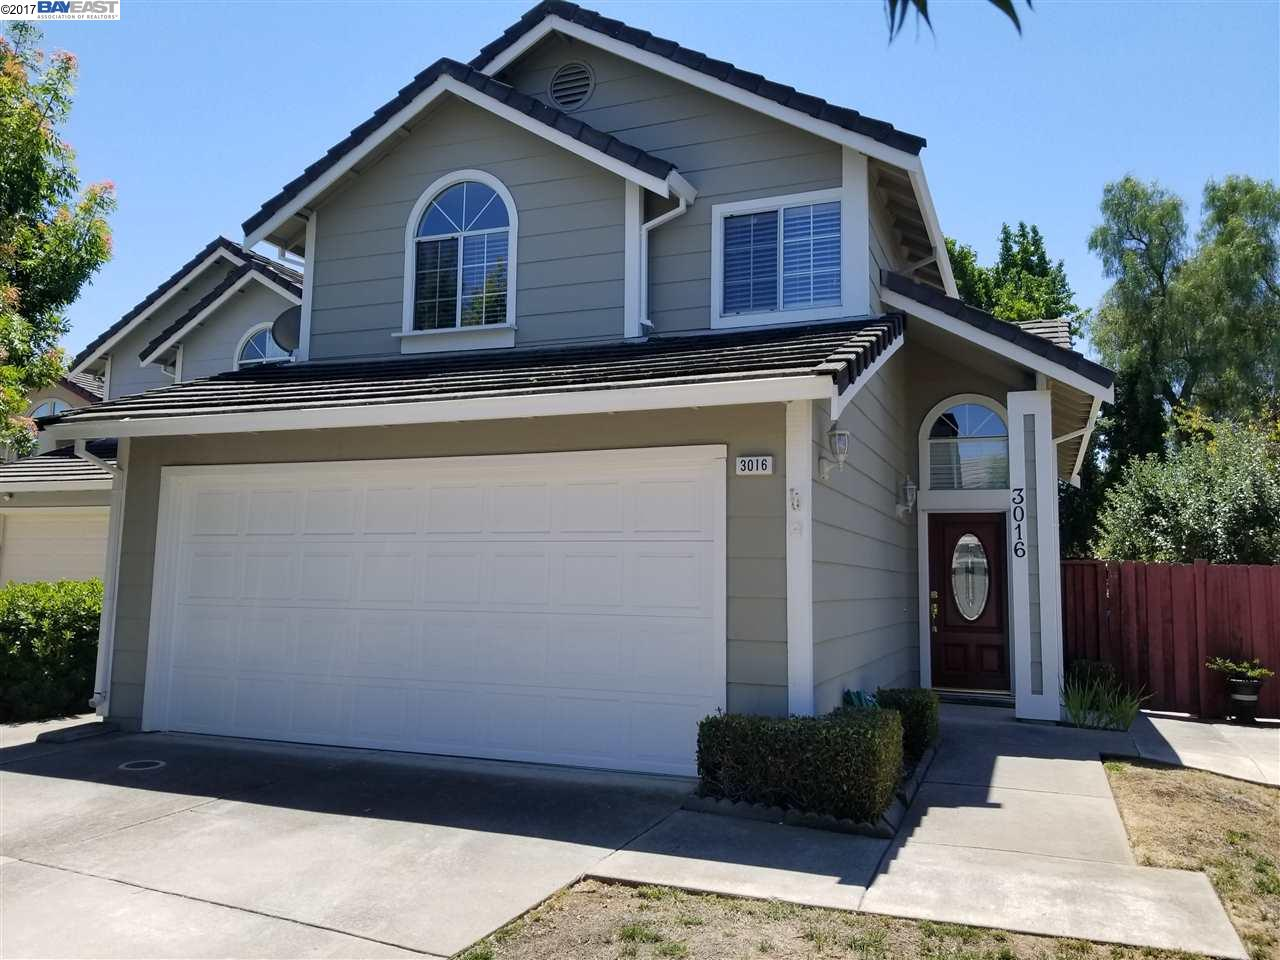 3016 Badger Dr., PLEASANTON, CA 94566